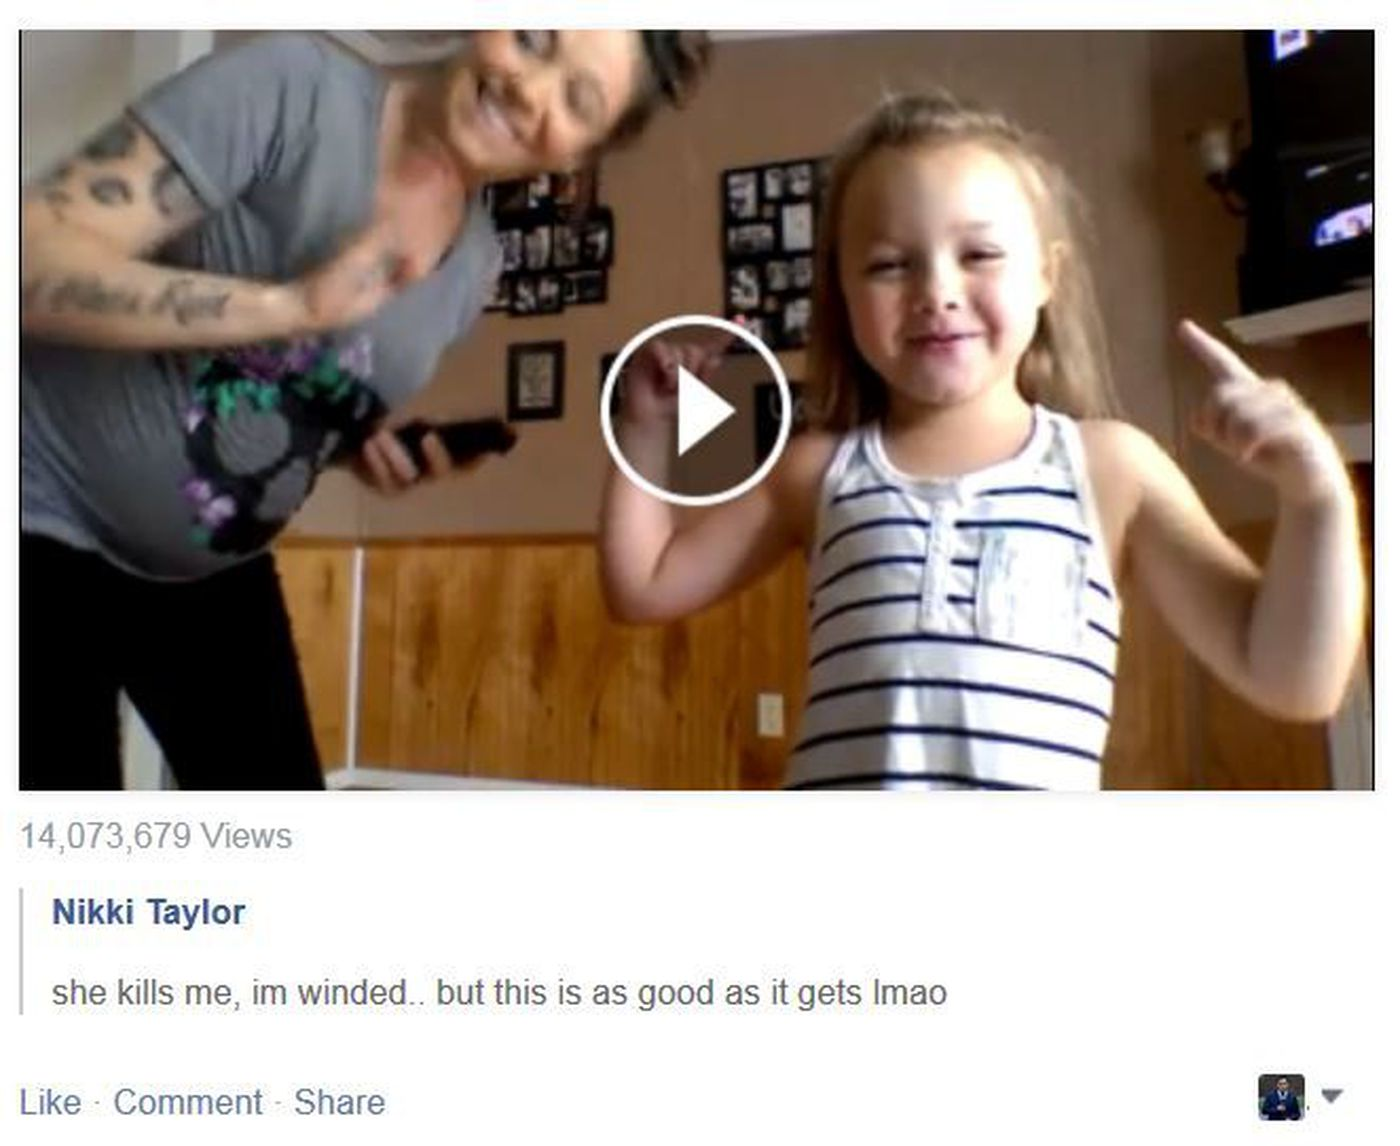 Viral video: Pregnant mother, young daughter dancing 'Whip/Nae Nae'